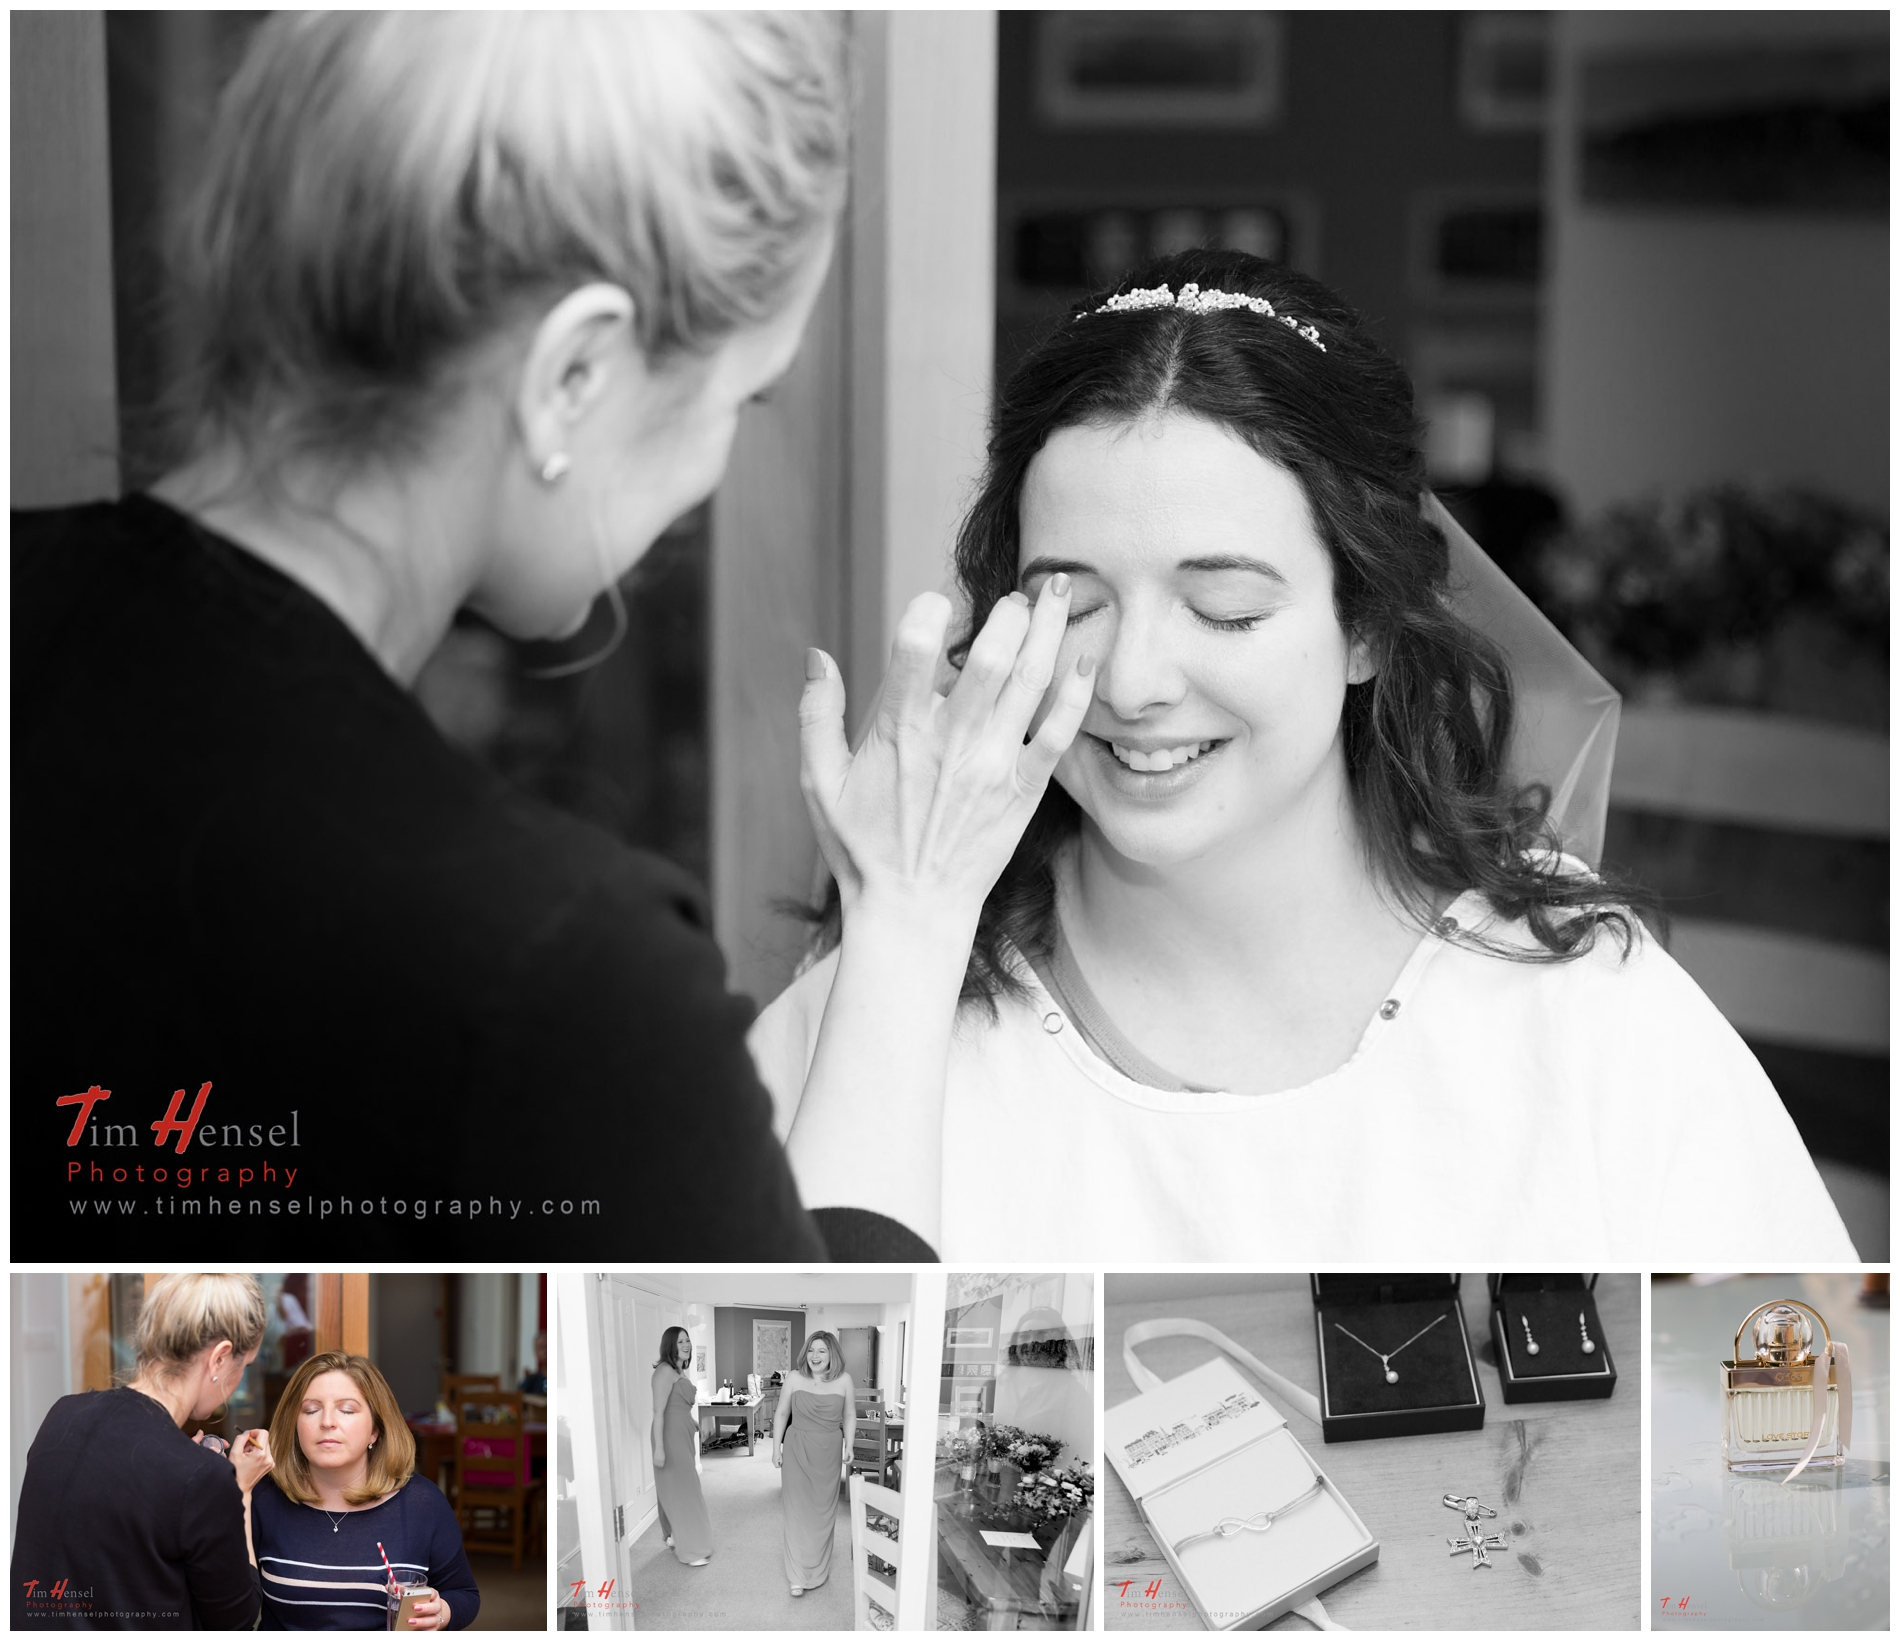 bridal makeup being applied in preparation for the wedding